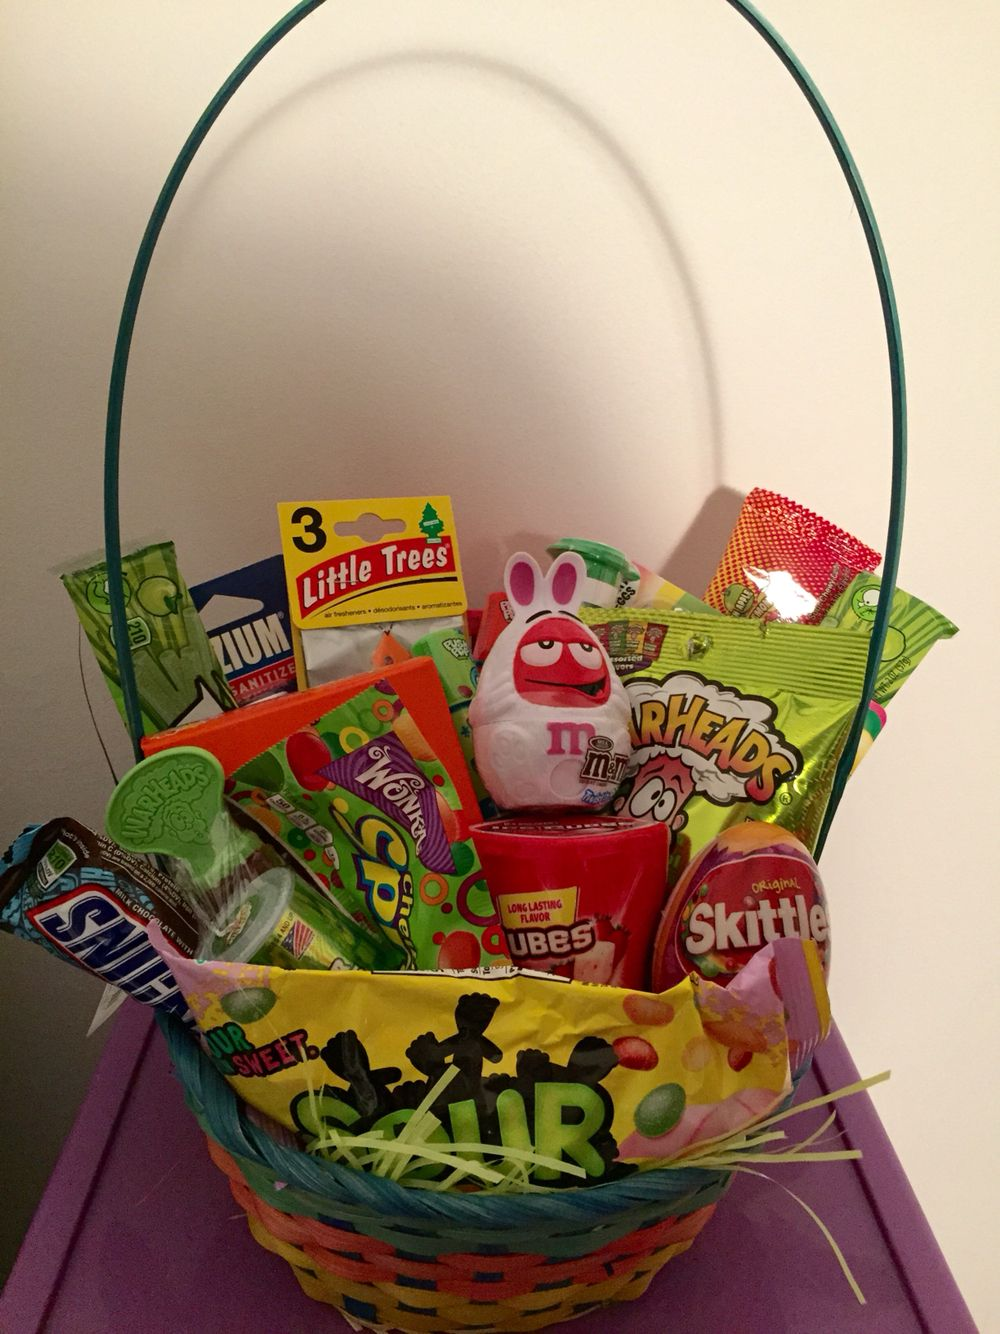 Easter basket for my boyfriend full of his favorite candies and easter basket for my boyfriend full of his favorite candies and goodies negle Gallery